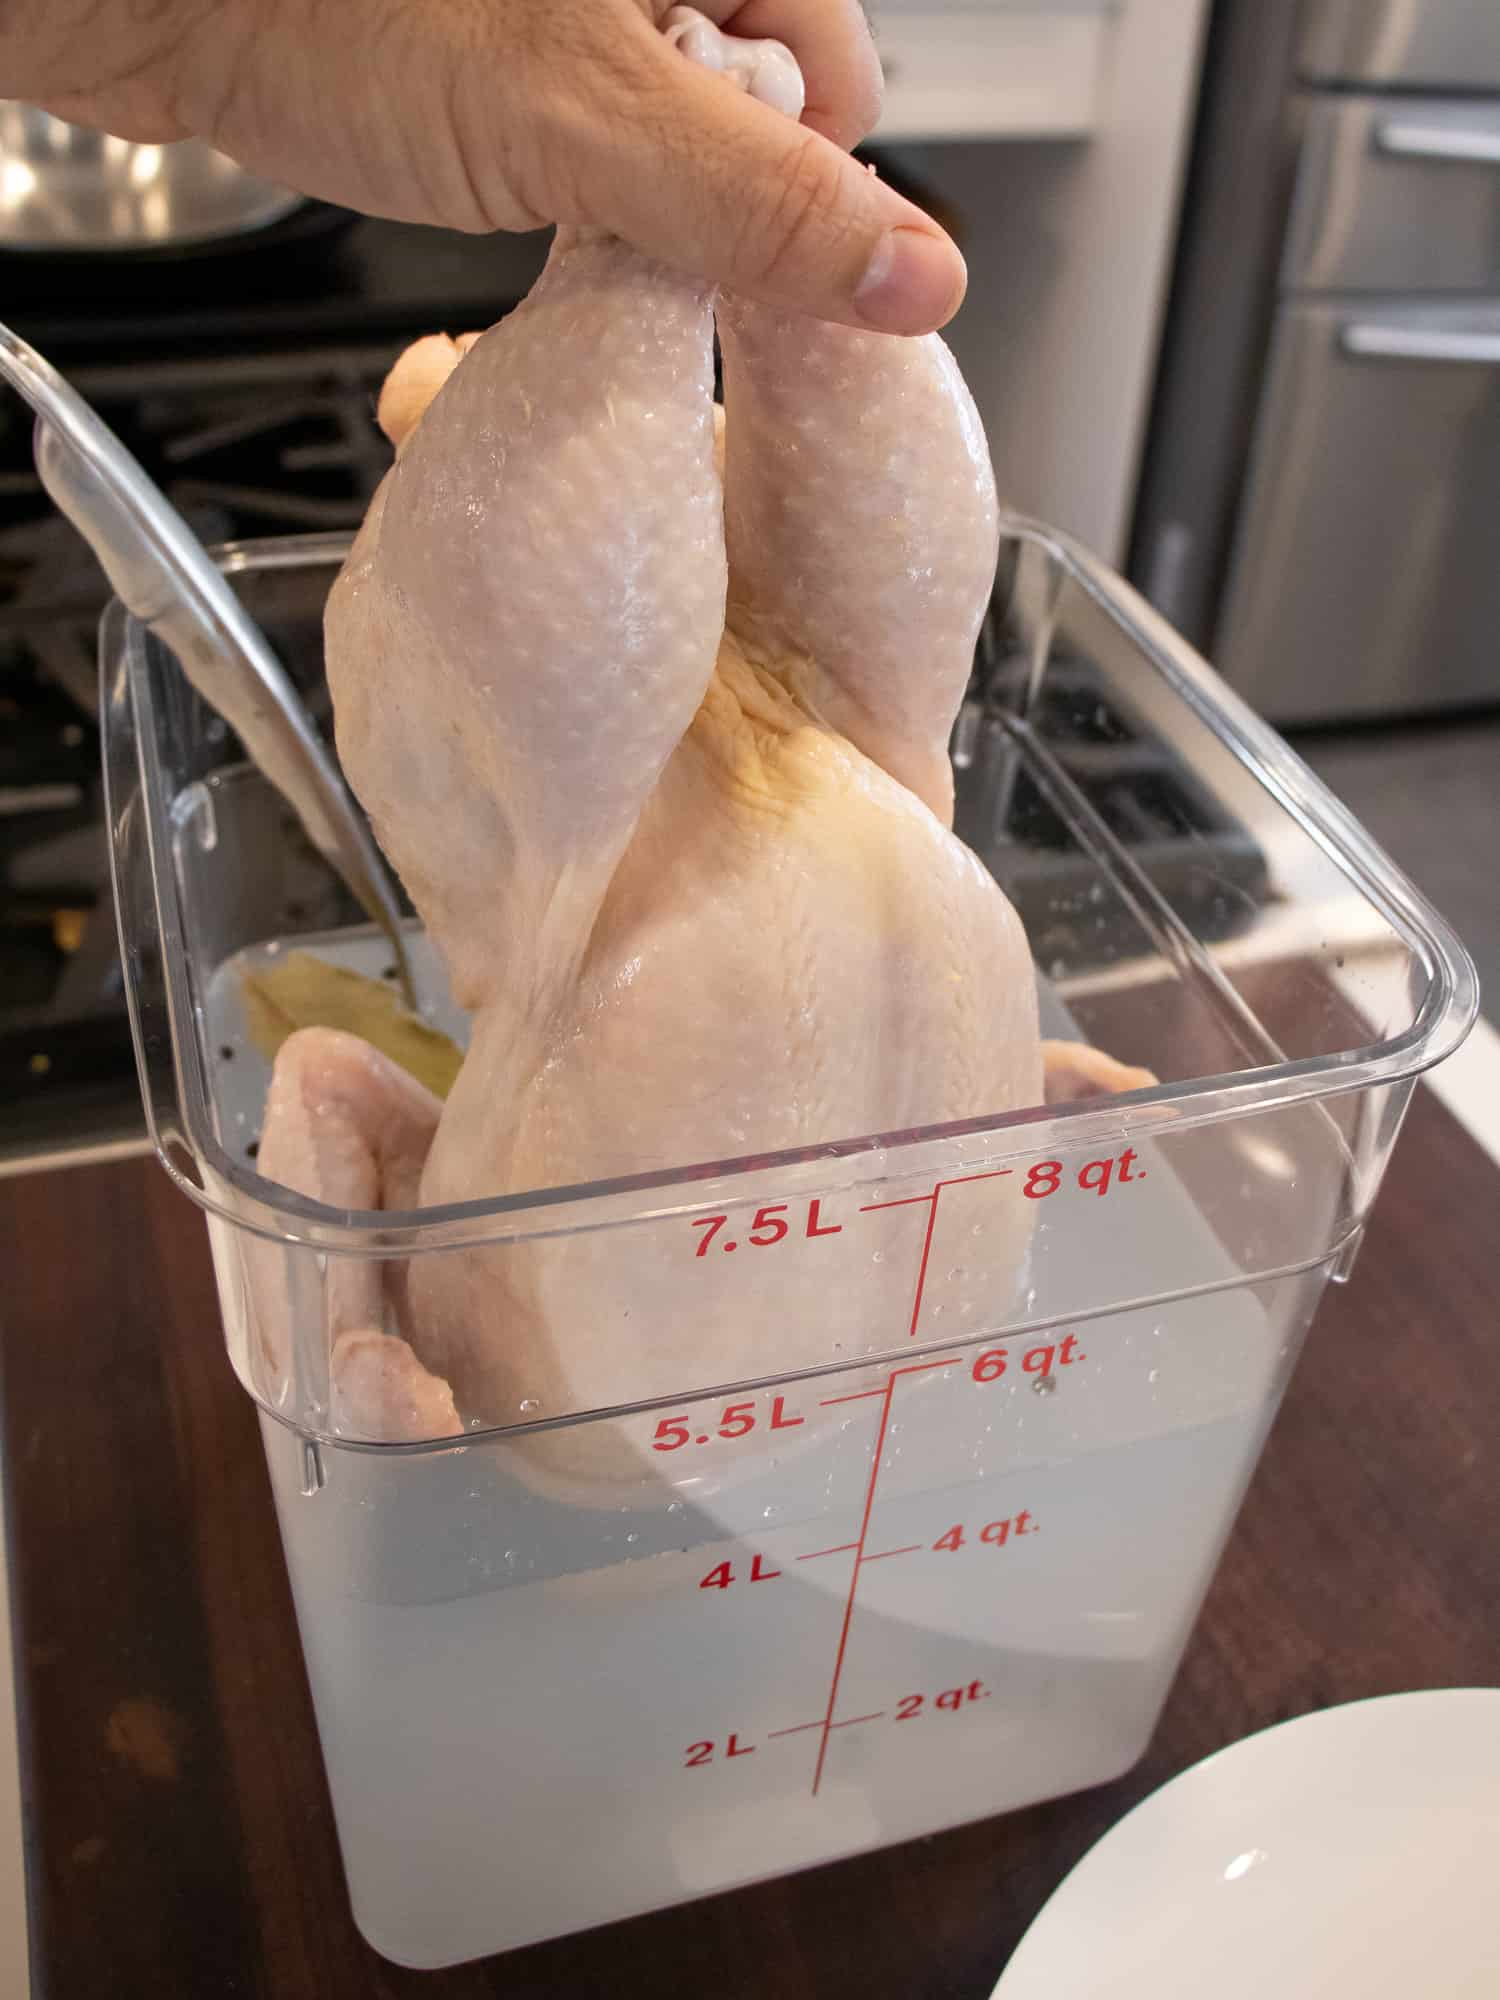 Easy instructions to make a simple brine for a whole chicken including how long to brine and what ingredients to use like salt, sugar, pepper and more.